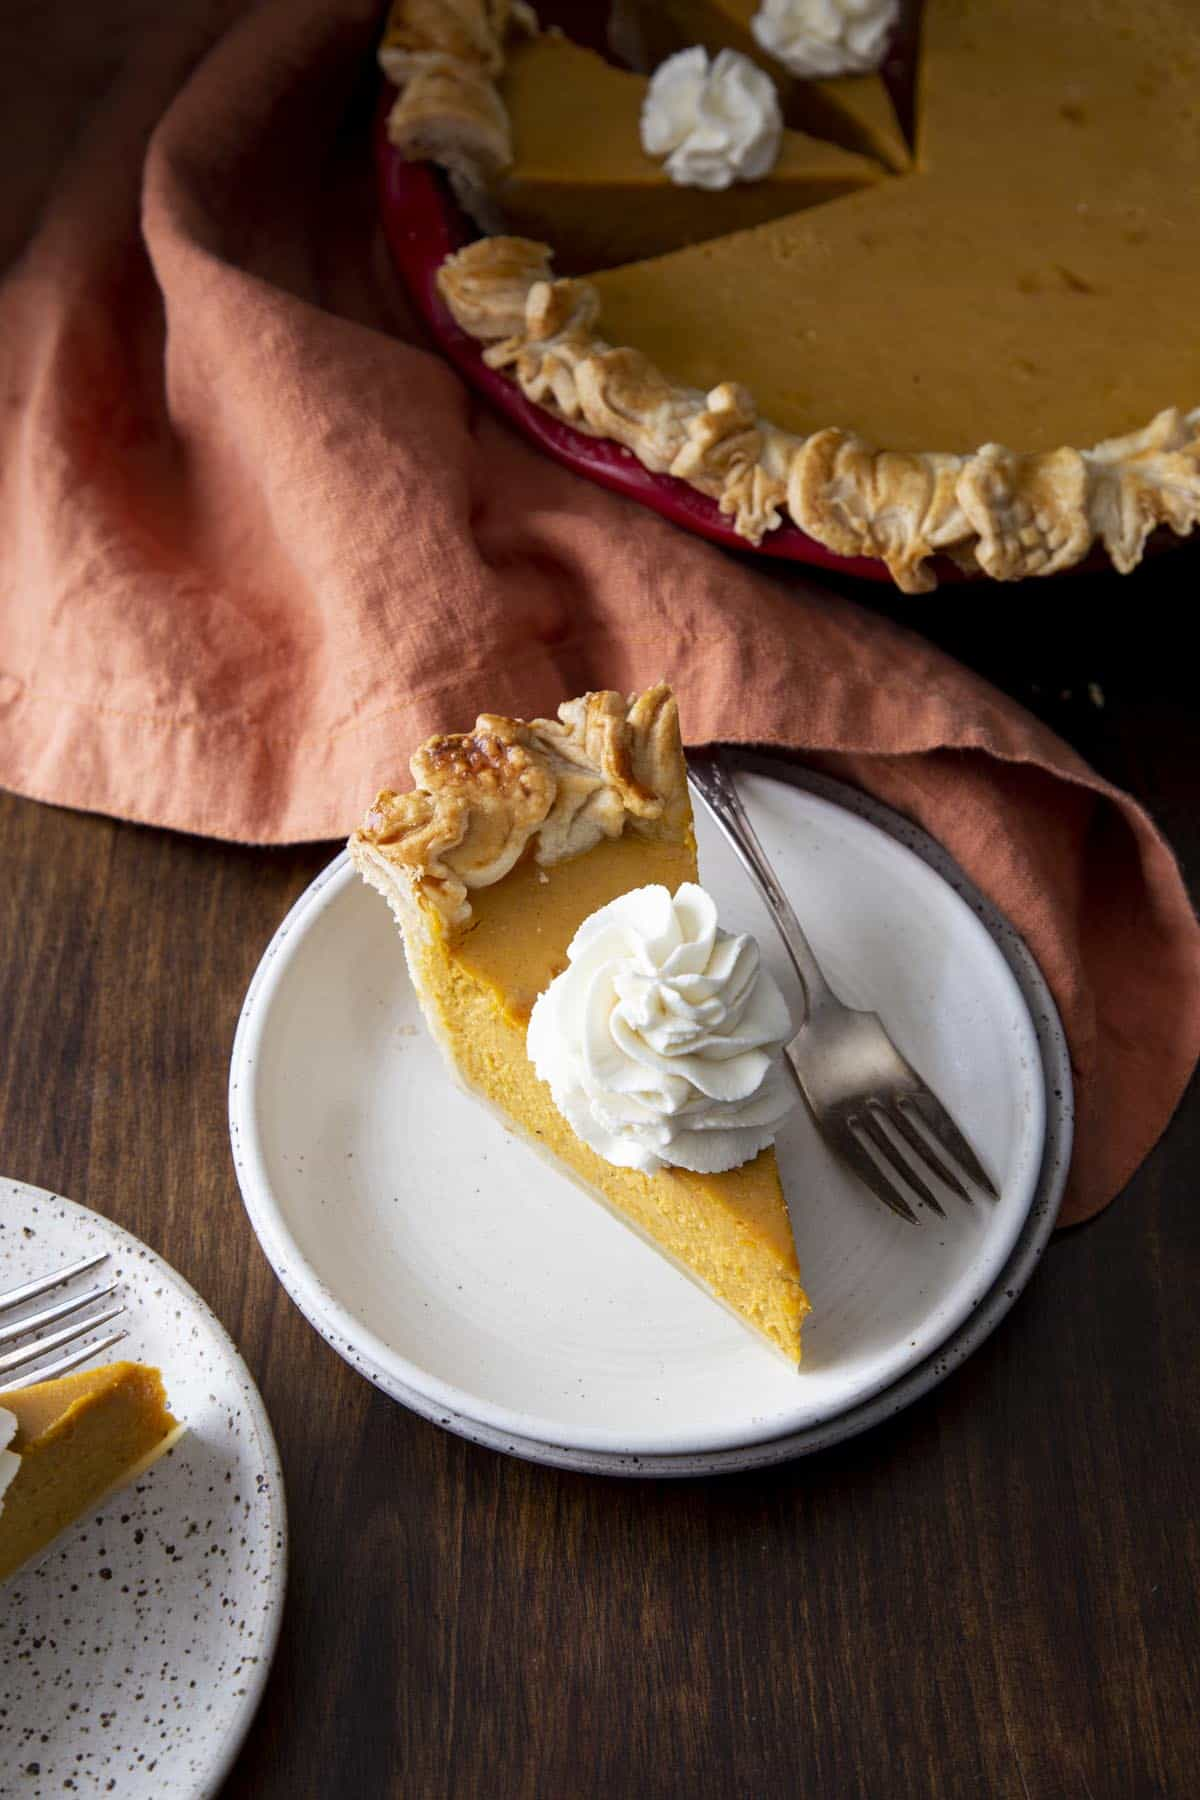 A slice of pumpkin pie with whipped cream on a white plate next to a fork